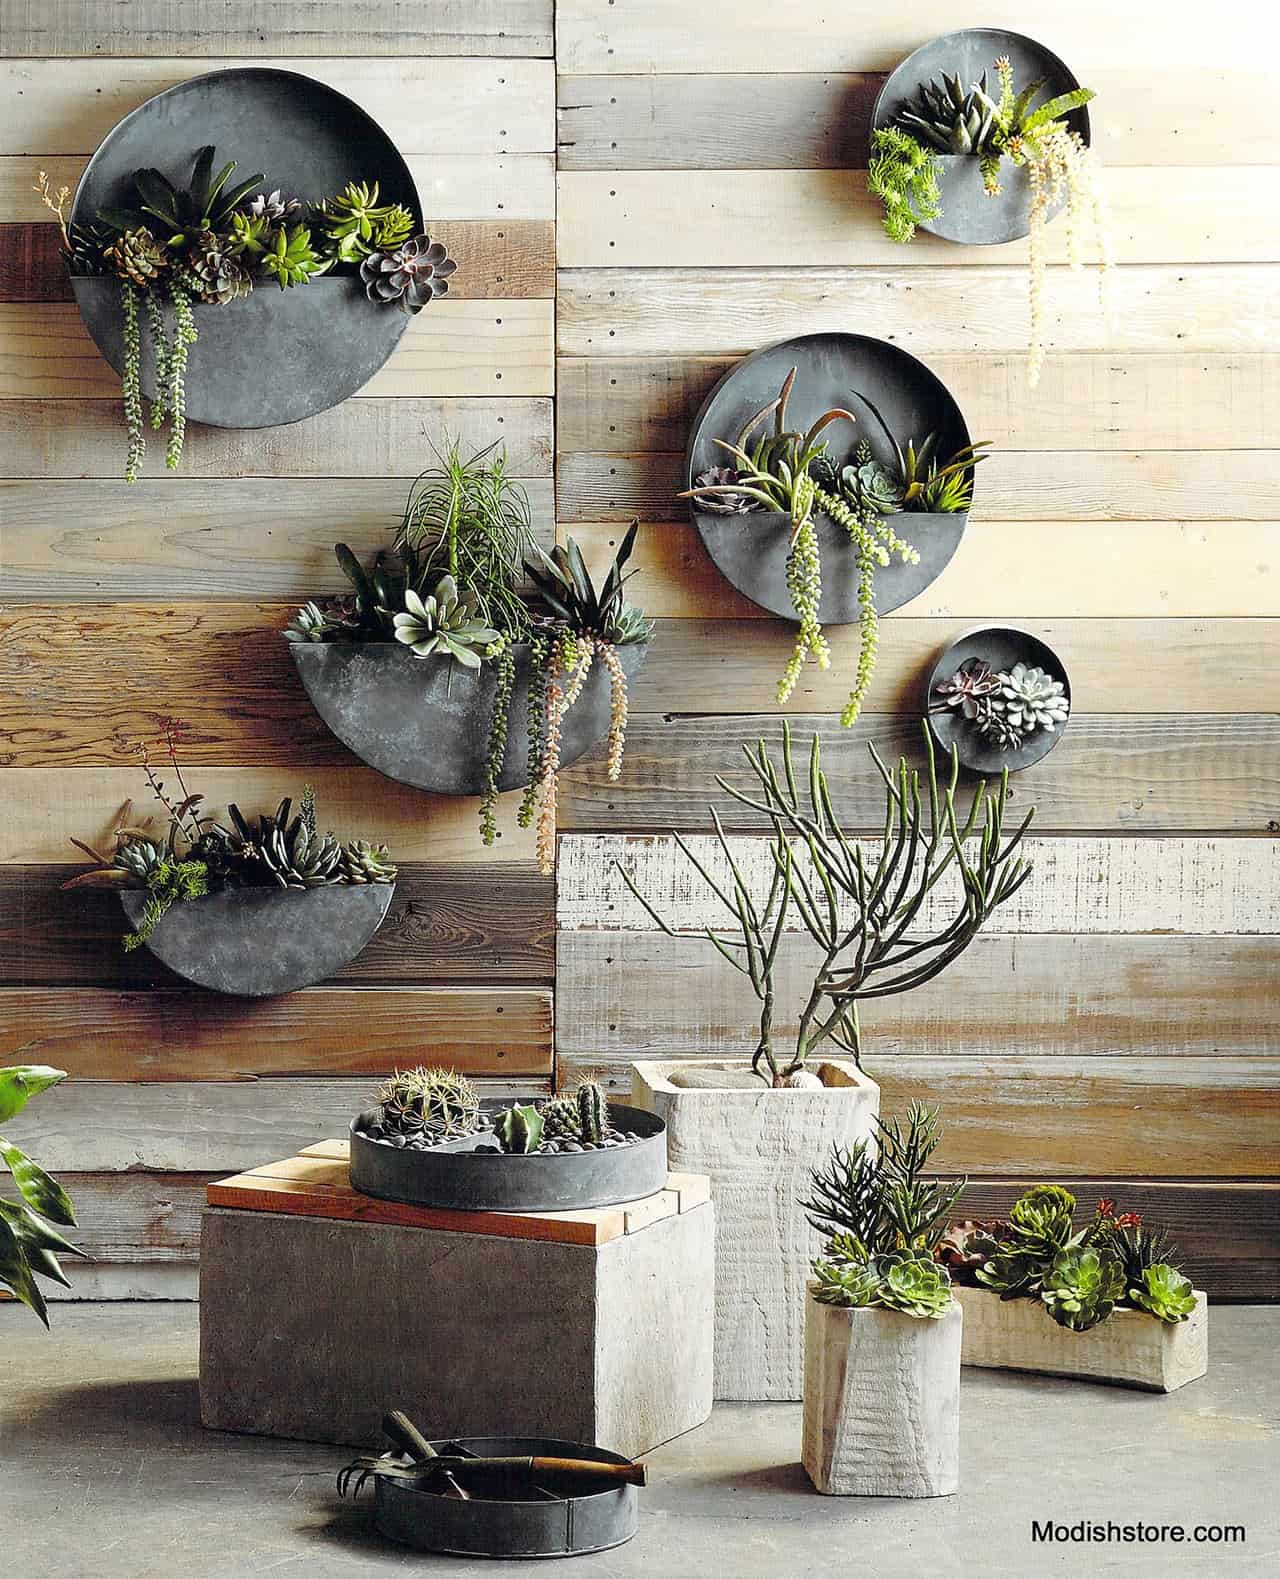 25-muted-round-zinc-planters-allow-plants-to-shine-vertical-gardens